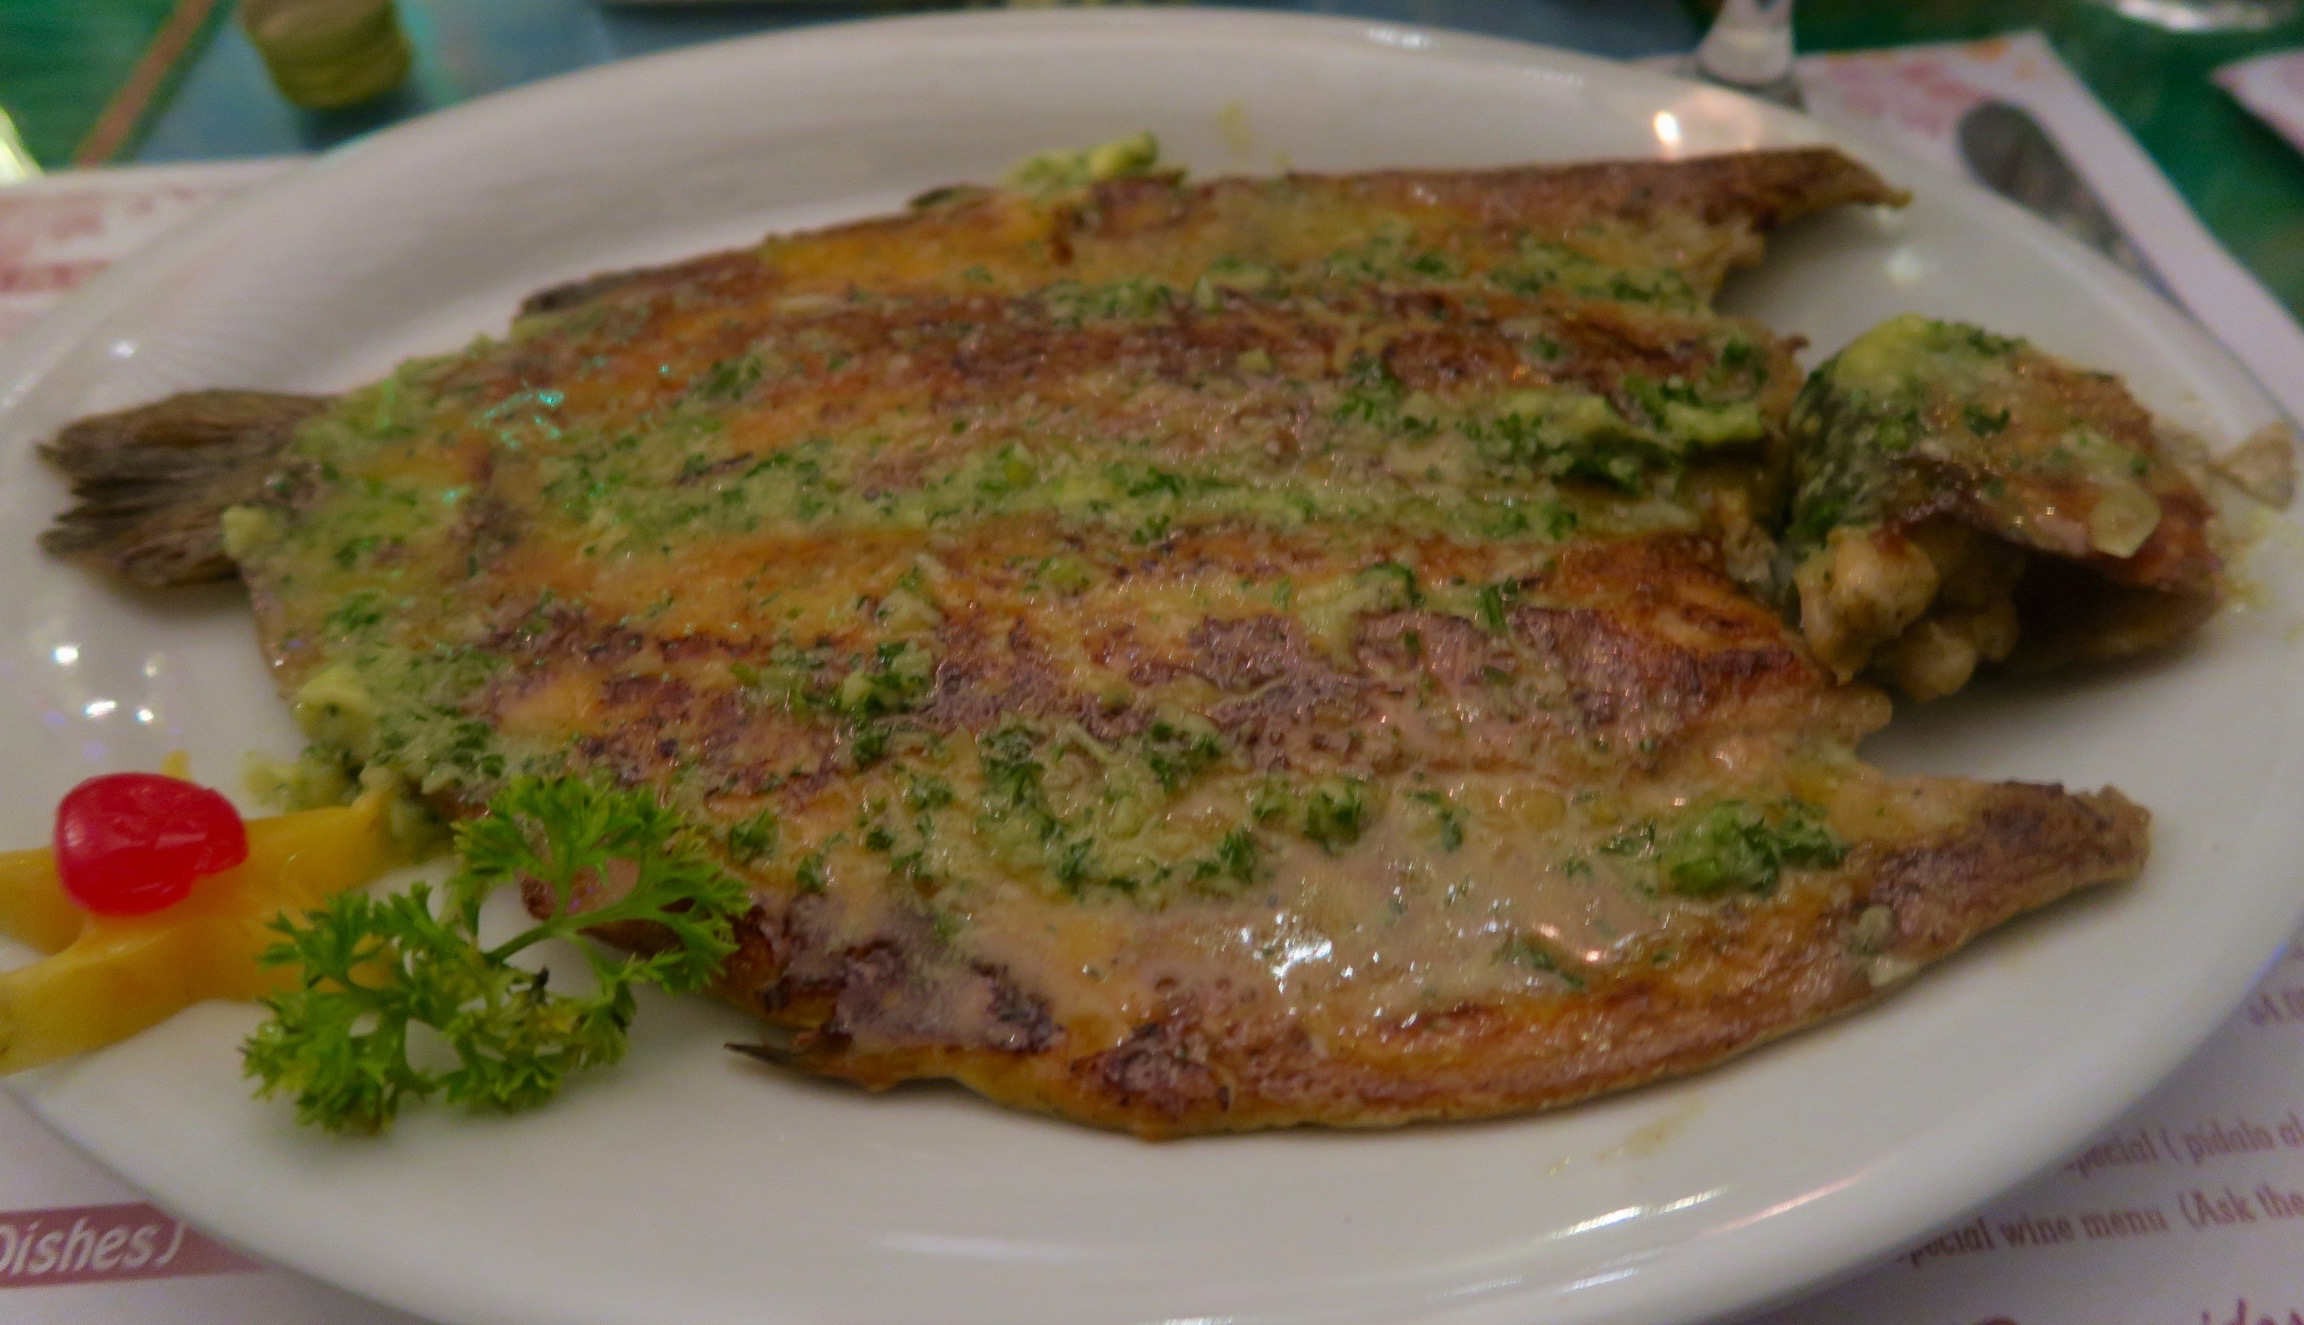 Trout with Garlic, Donde Laurita